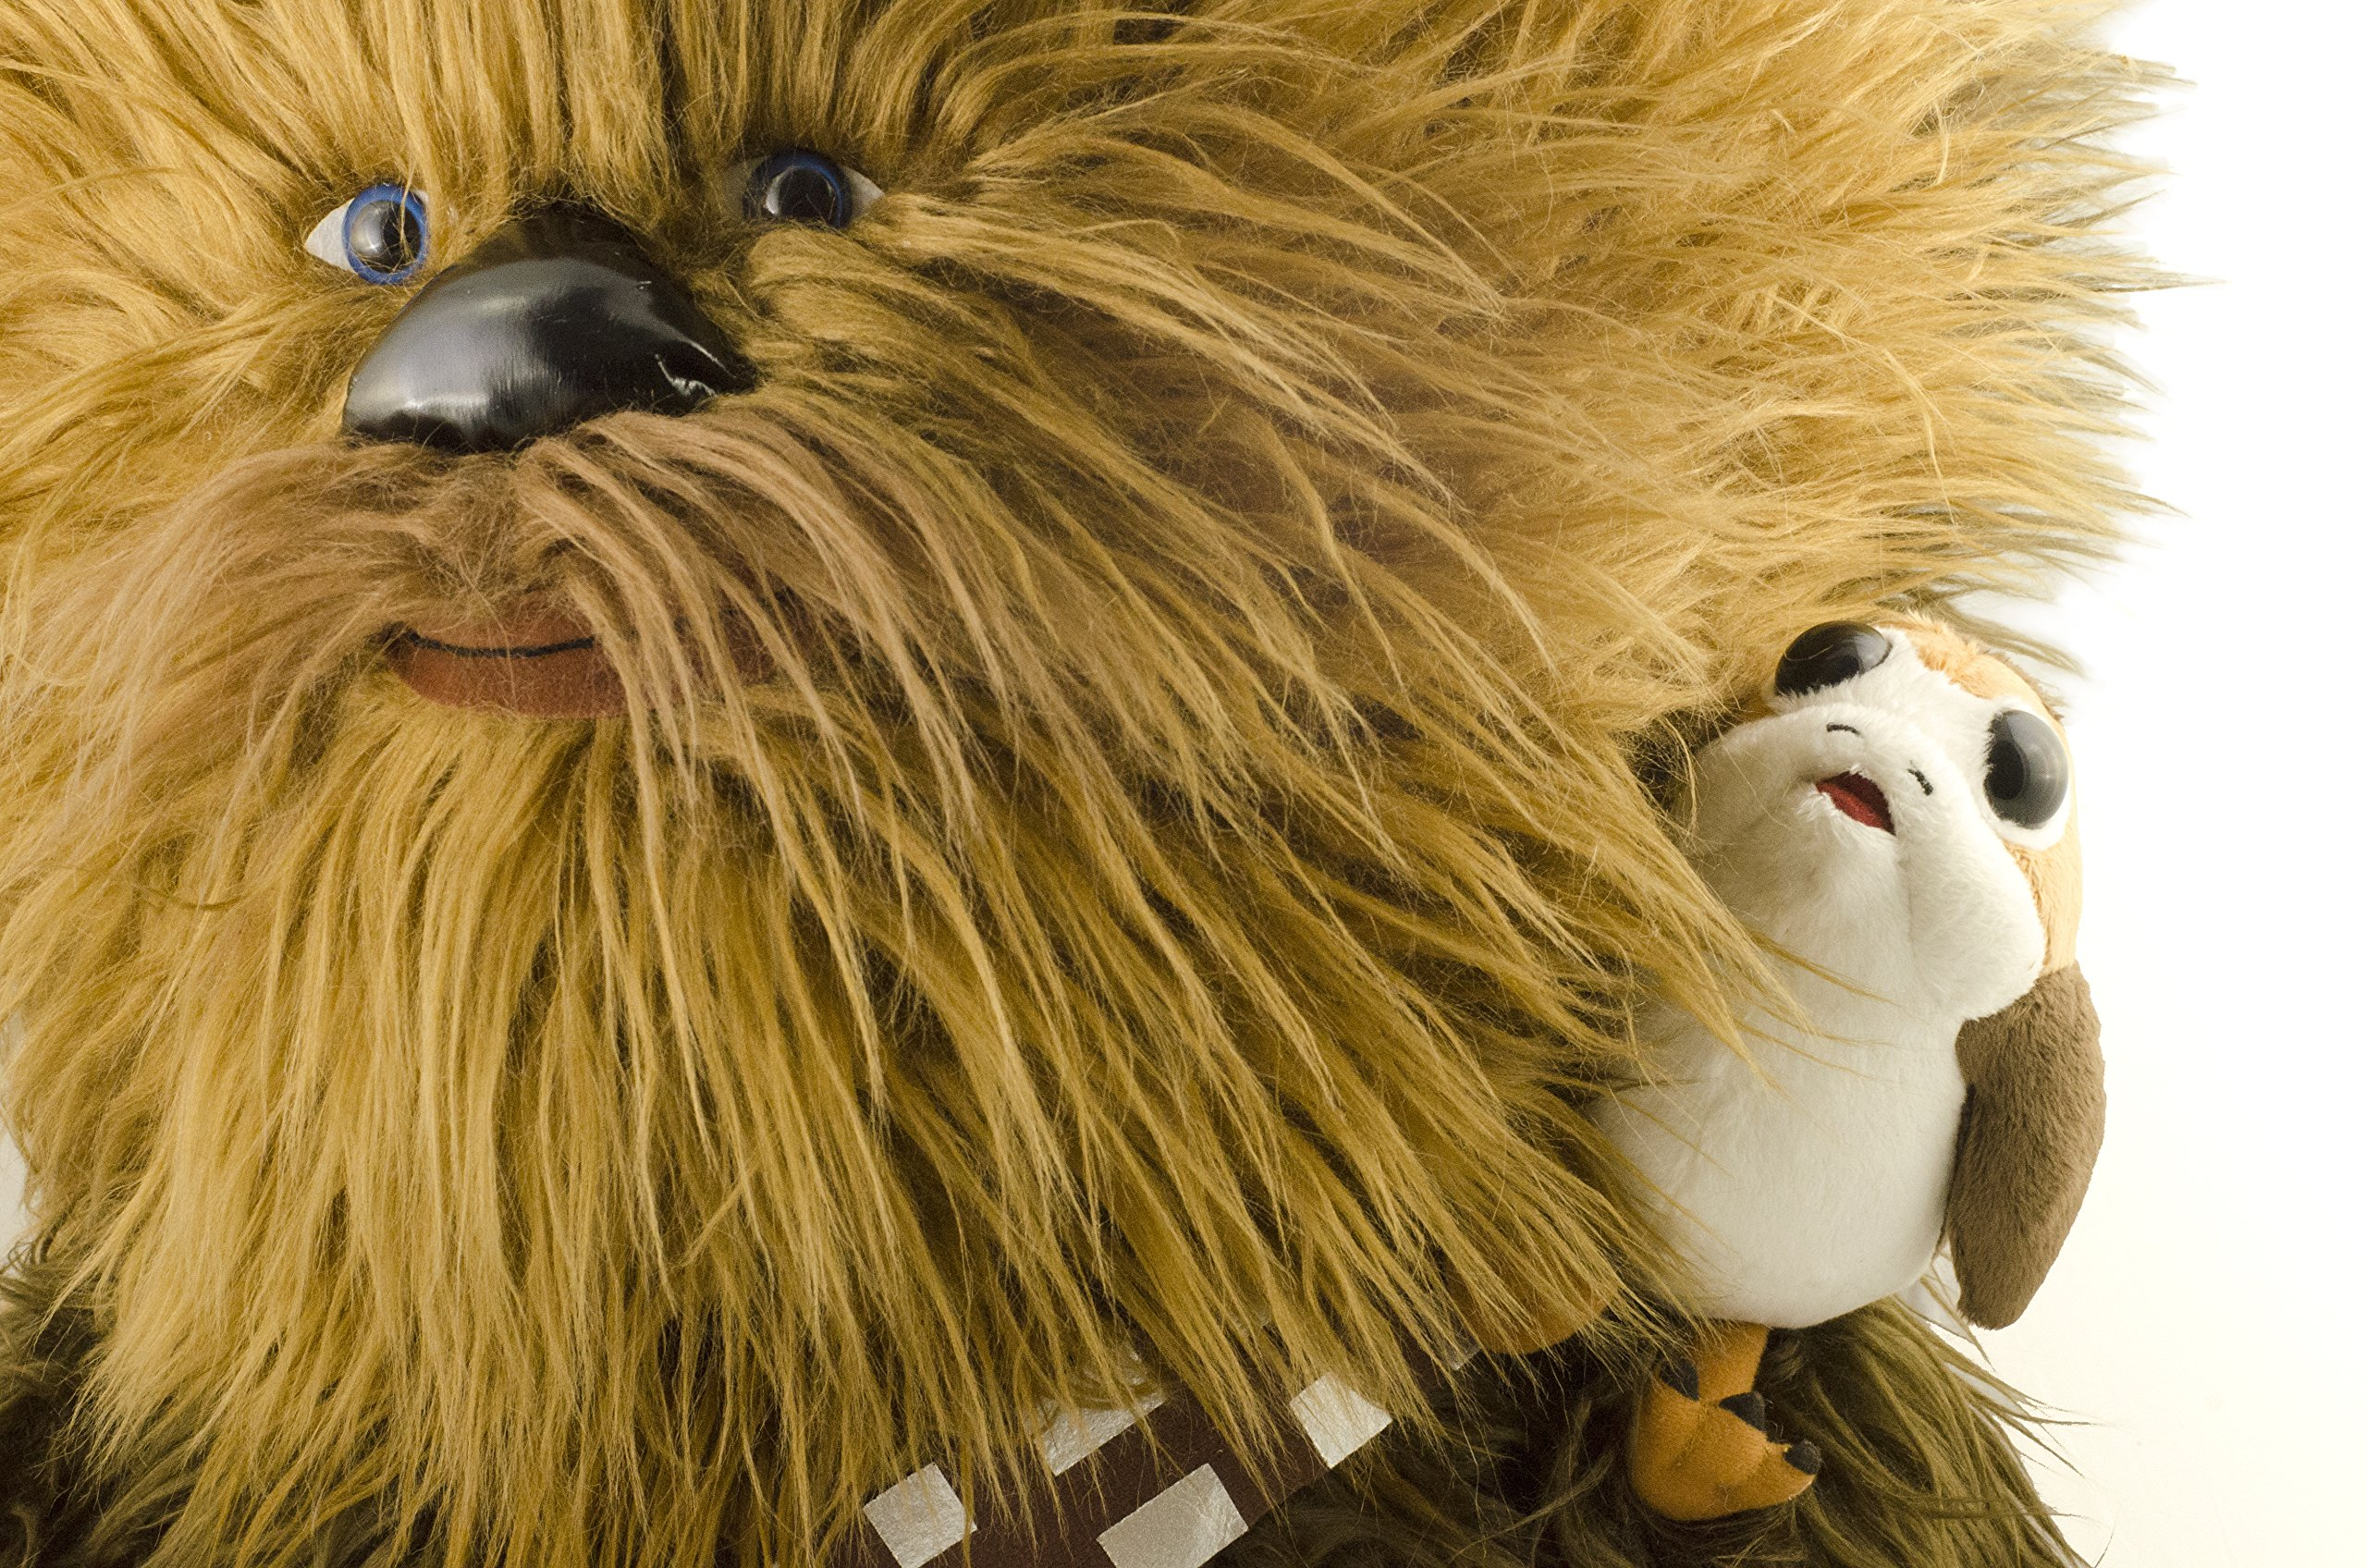 Buy Talking Chewbacca Plush Now!